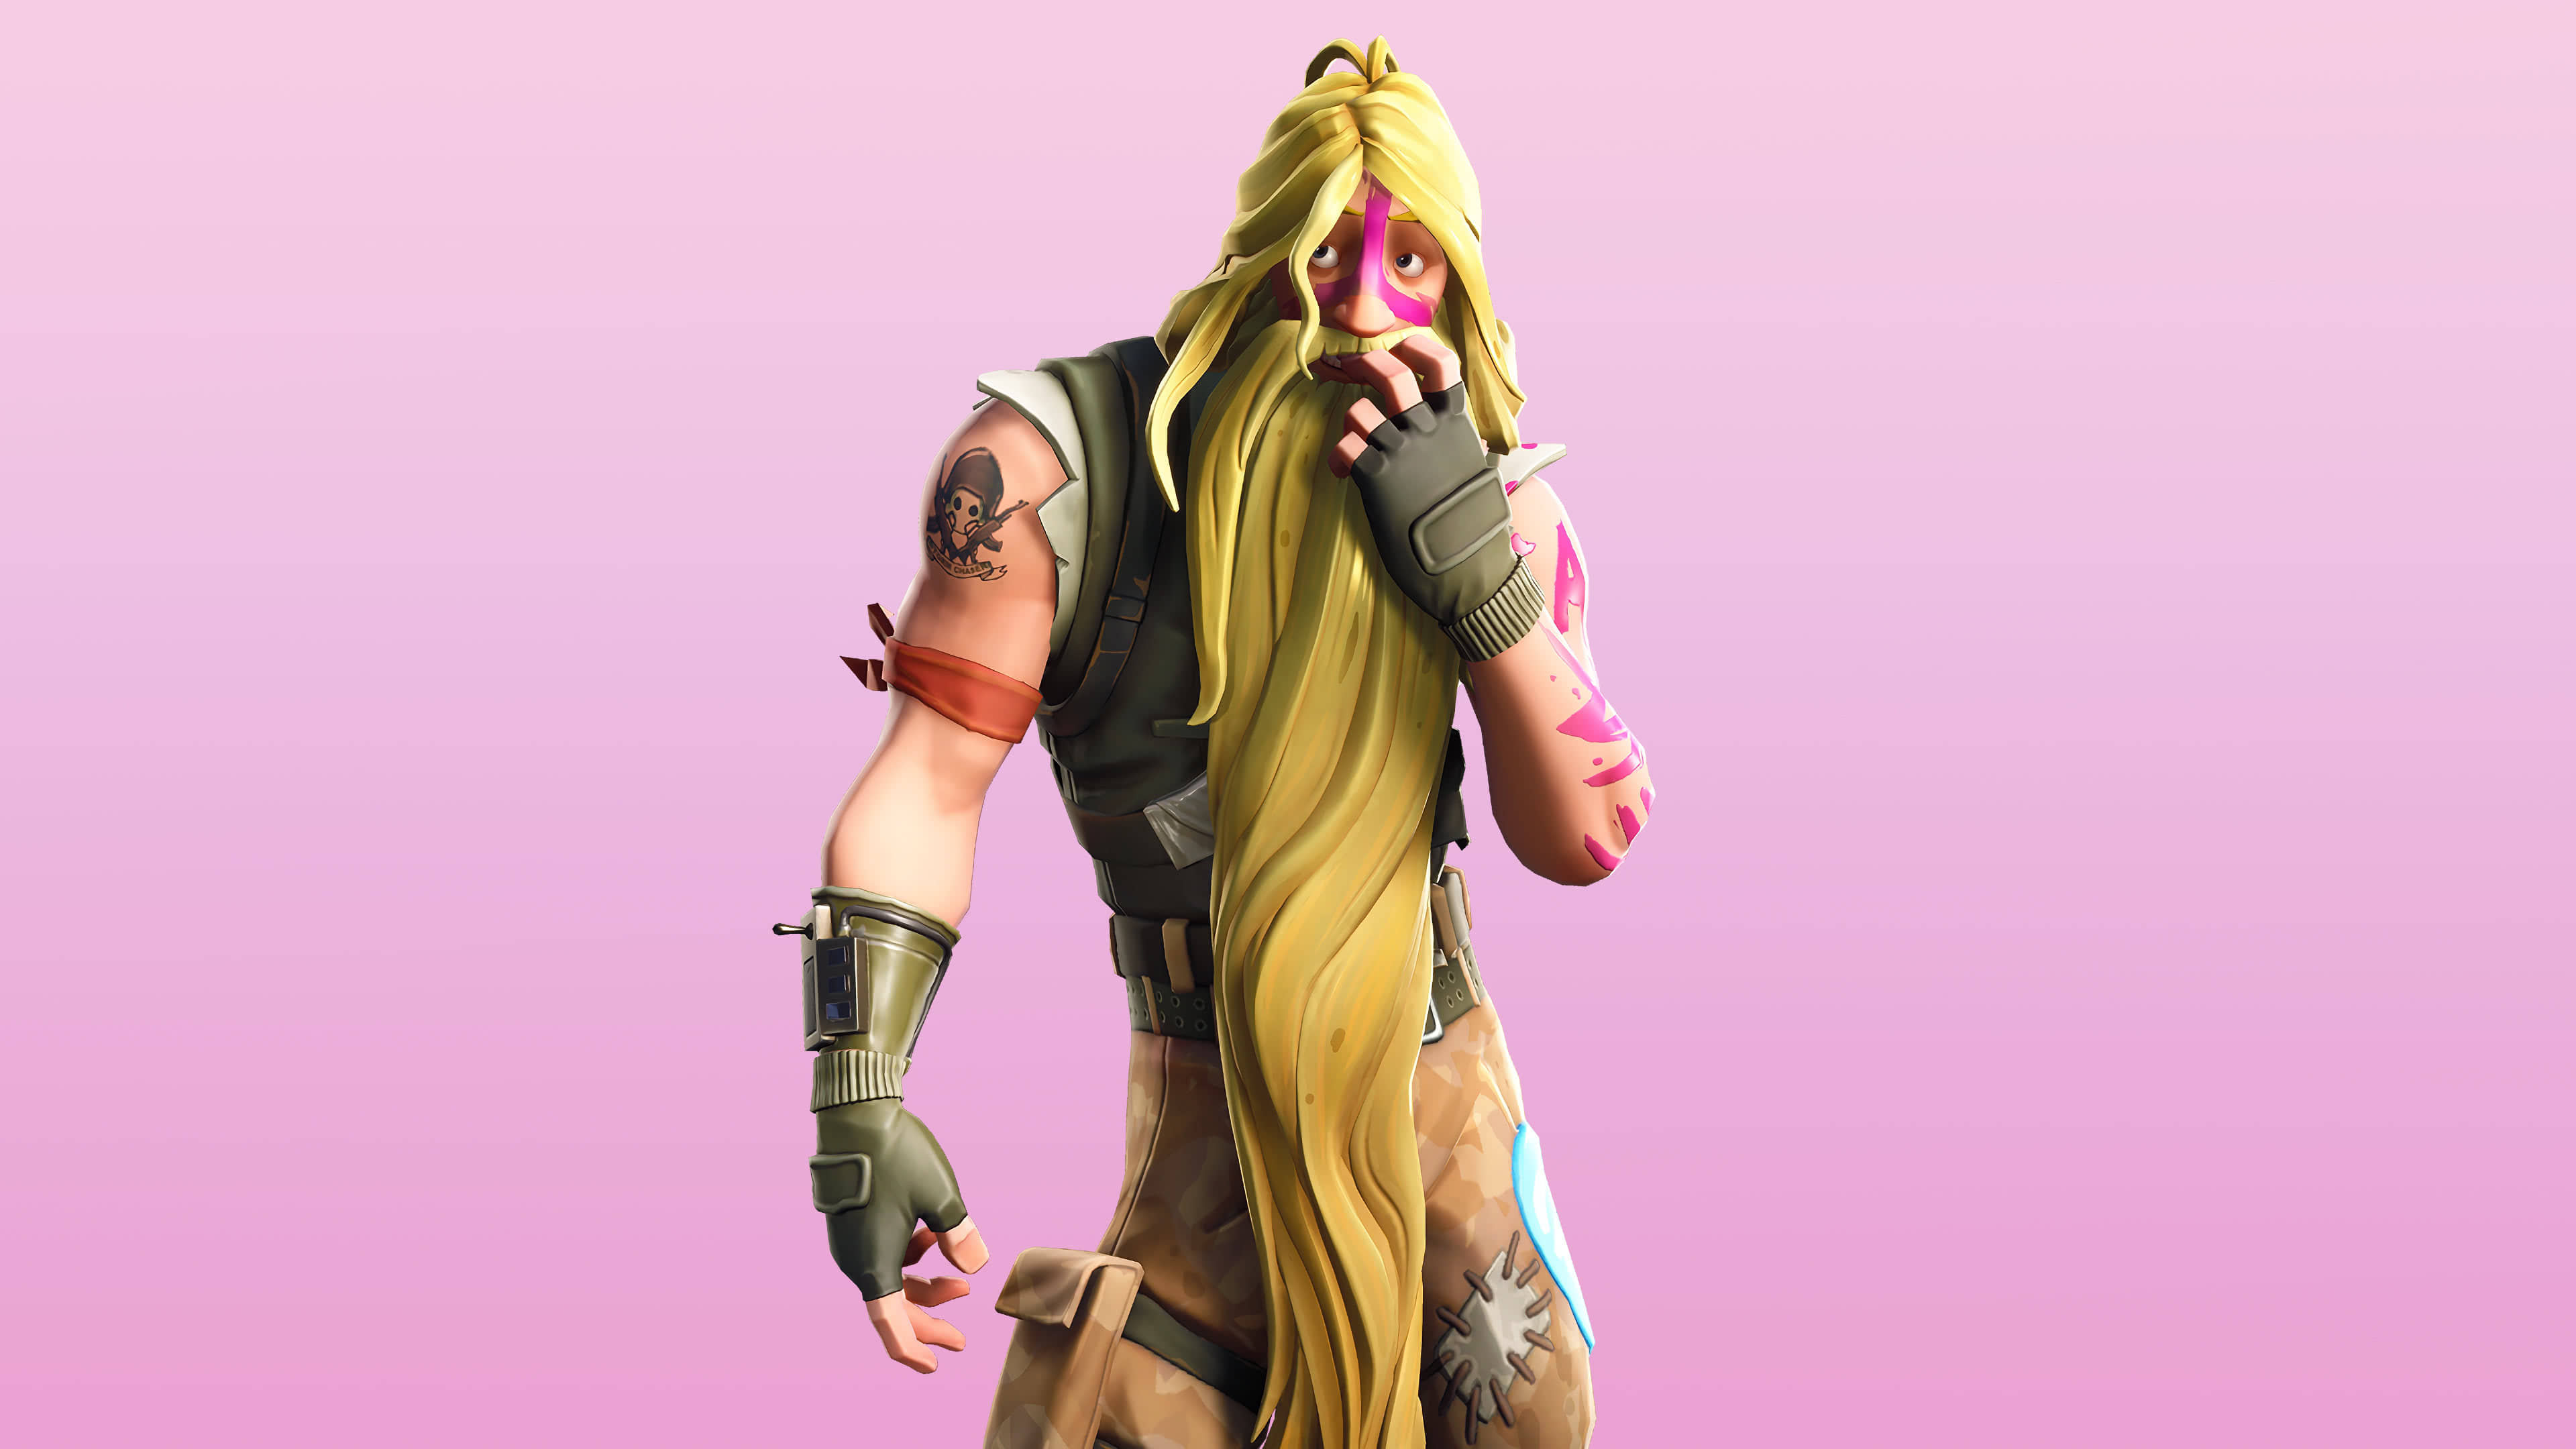 fortnite bunker days set bunker jonesy skin outfit uhd 4k wallpaper